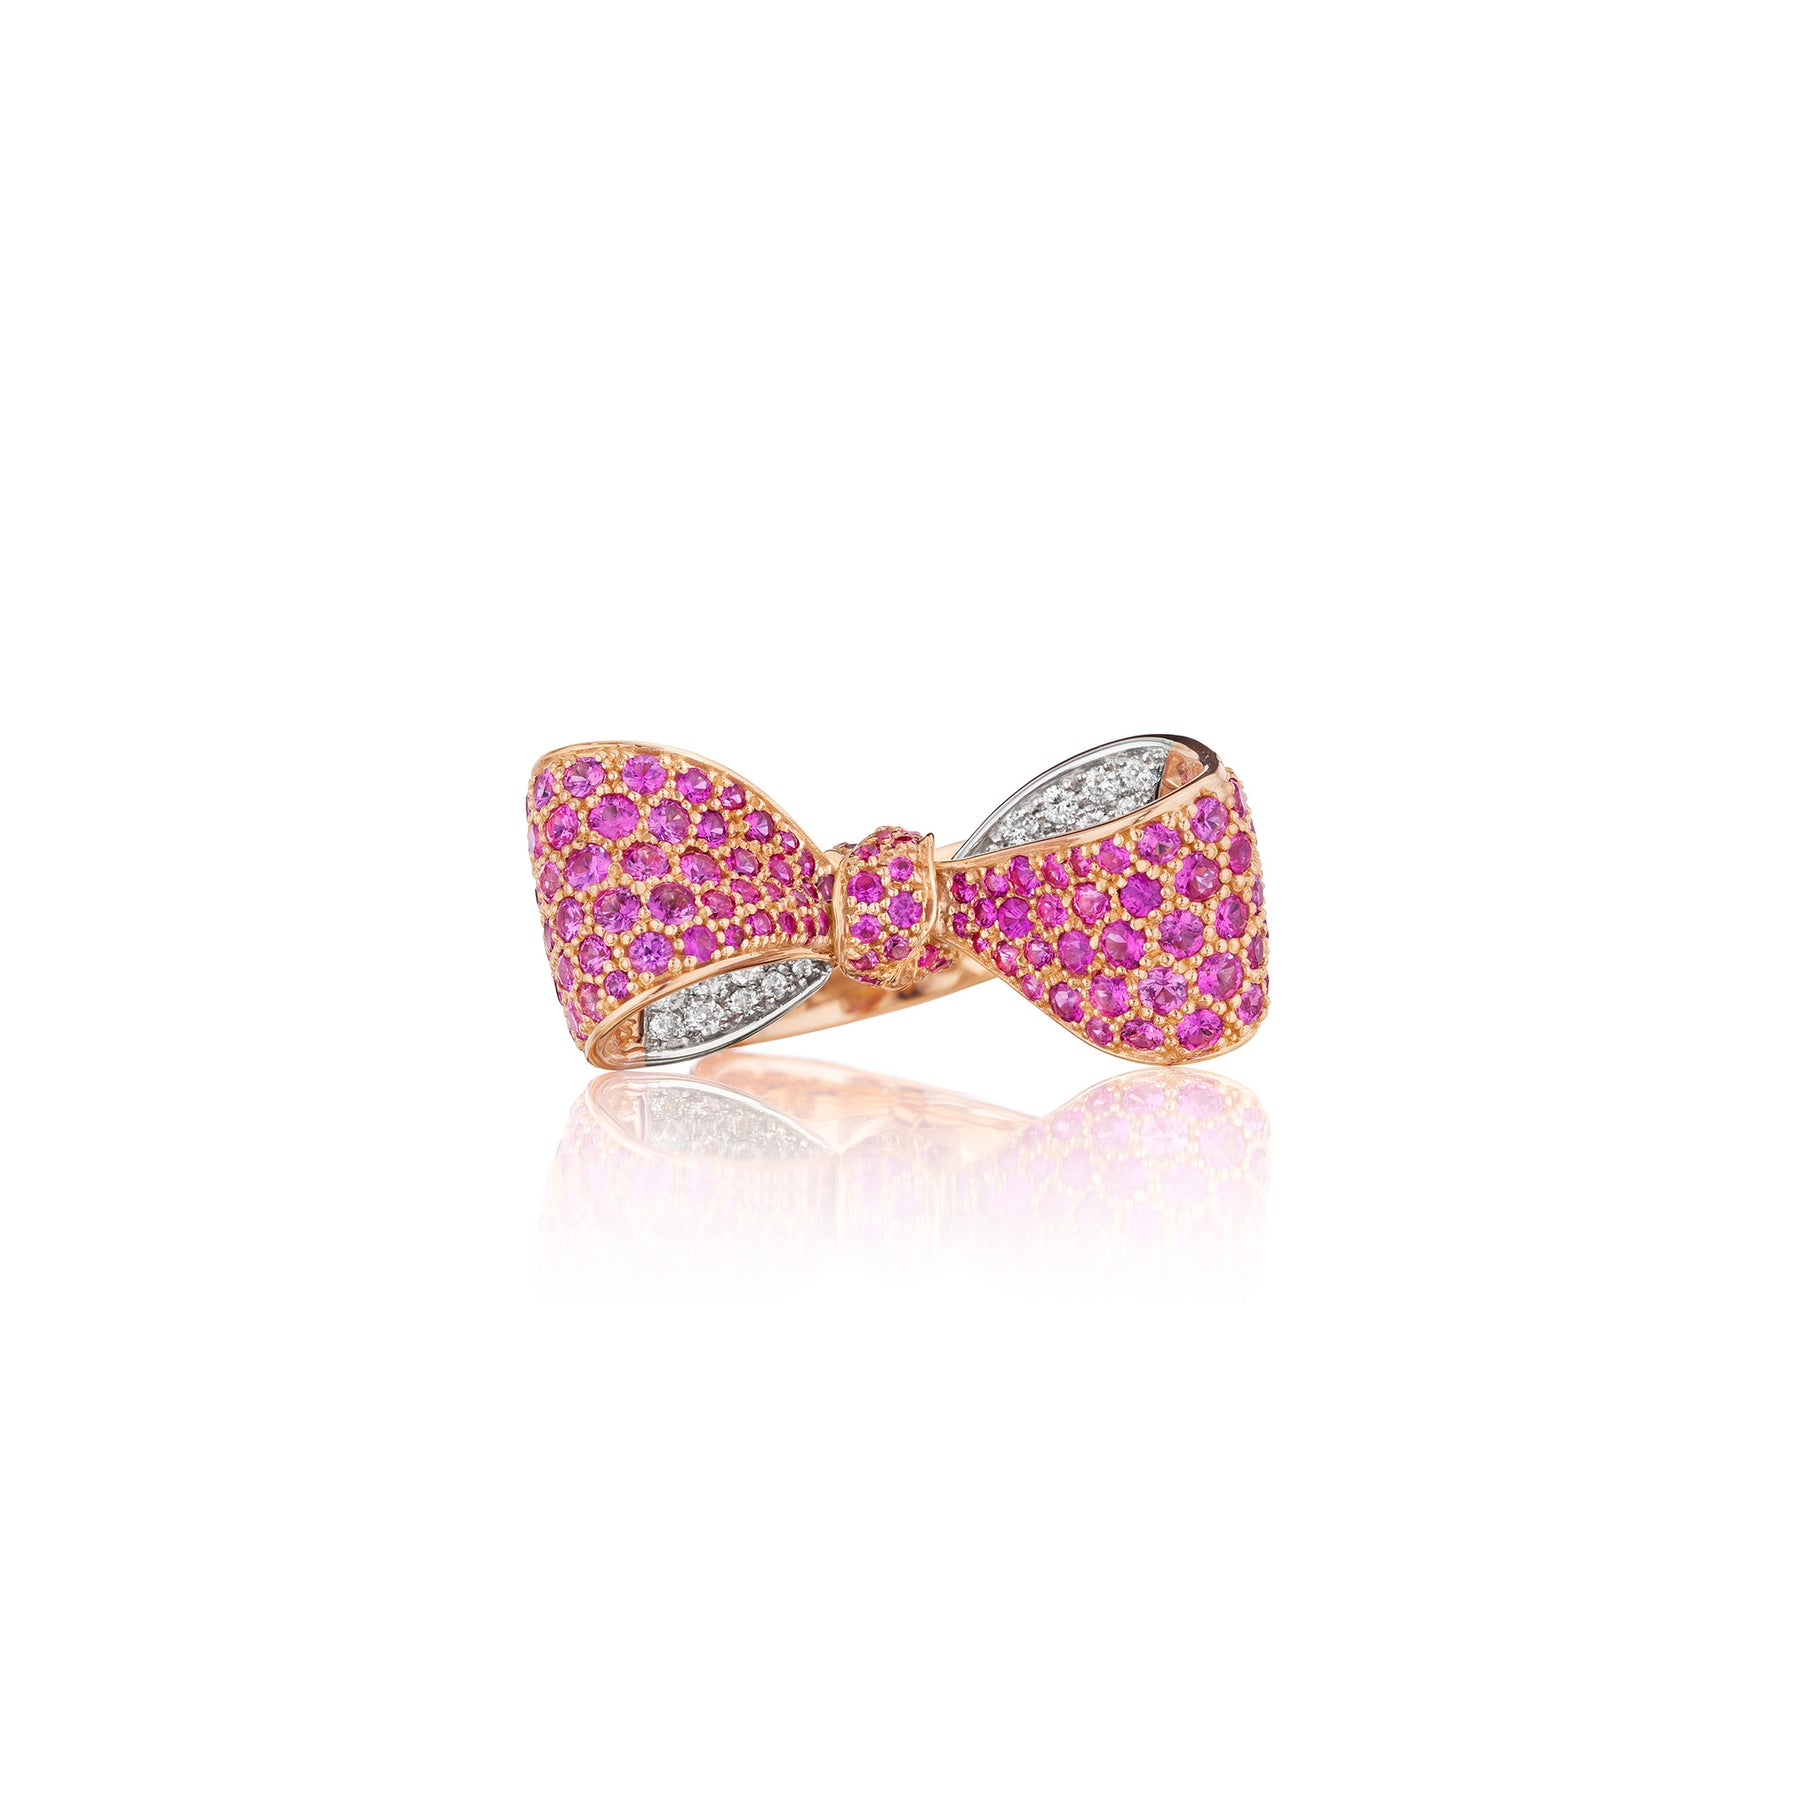 Mimi-So-Bow-Mid-Pink-Sapphire-Diamond-Ring_18k White/Rose Gold